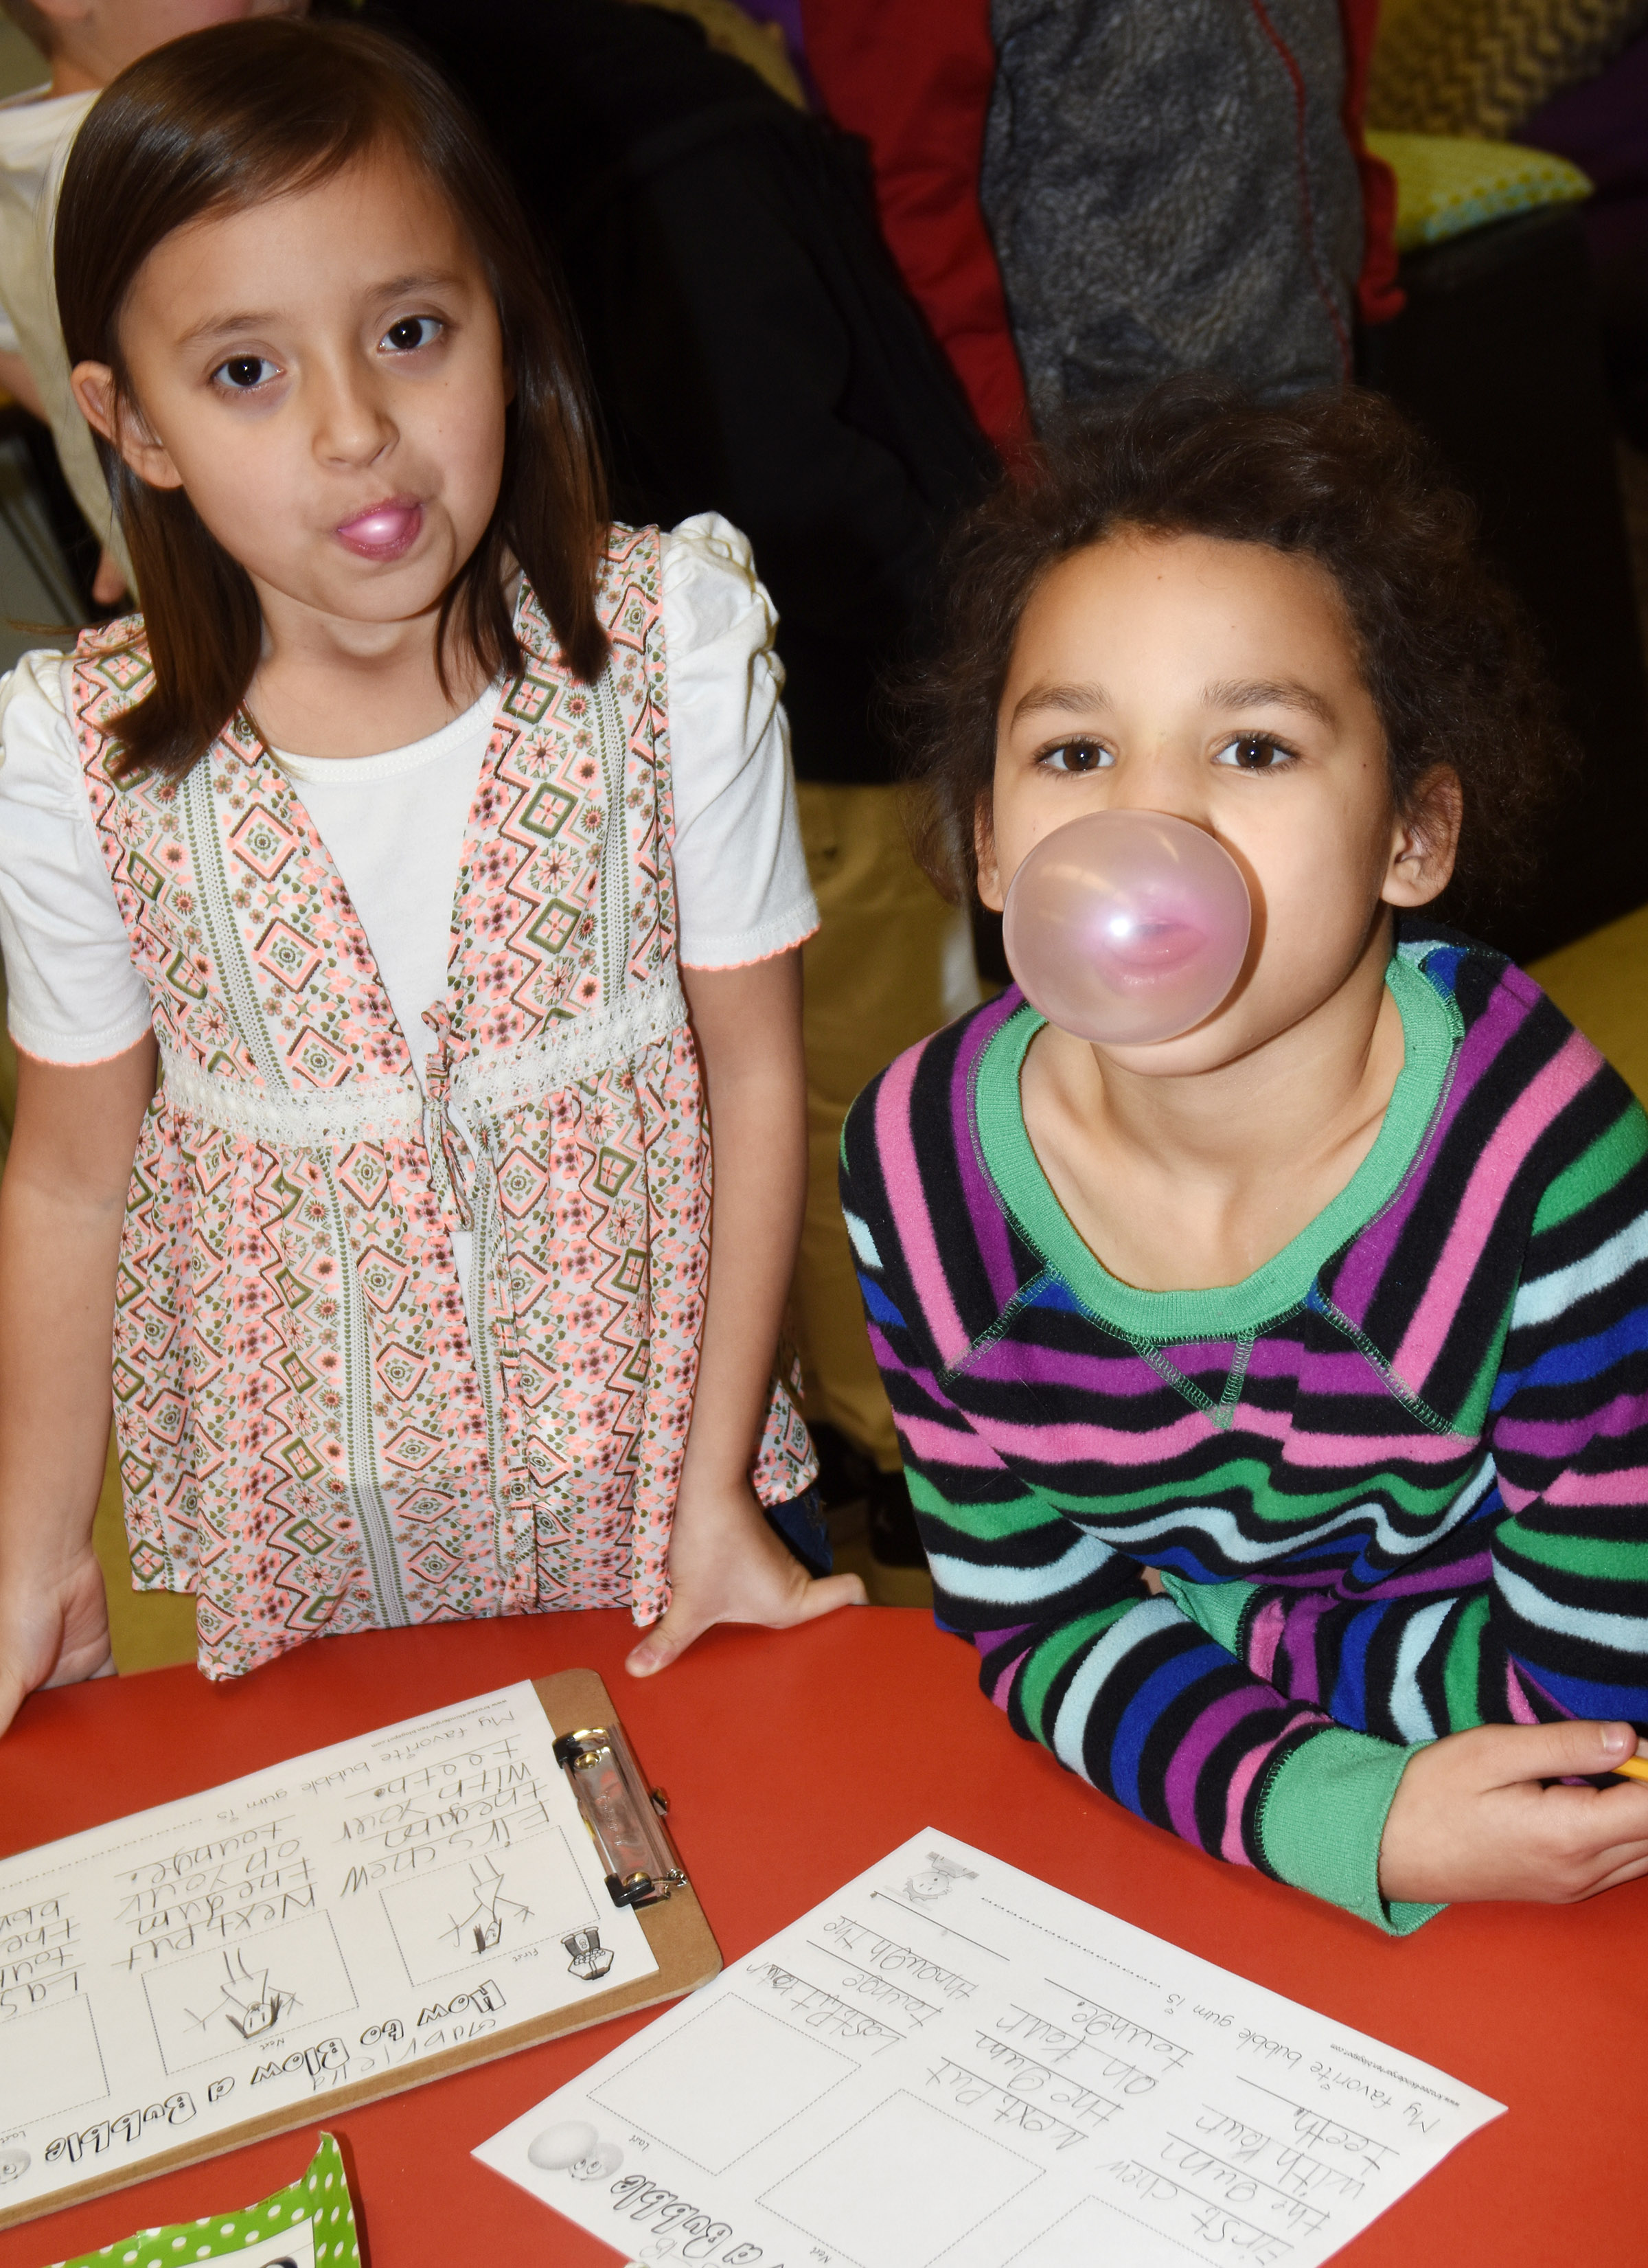 CES first-graders Gabriella Tate, at left, and Aleeya Spaulding blow bubbles.